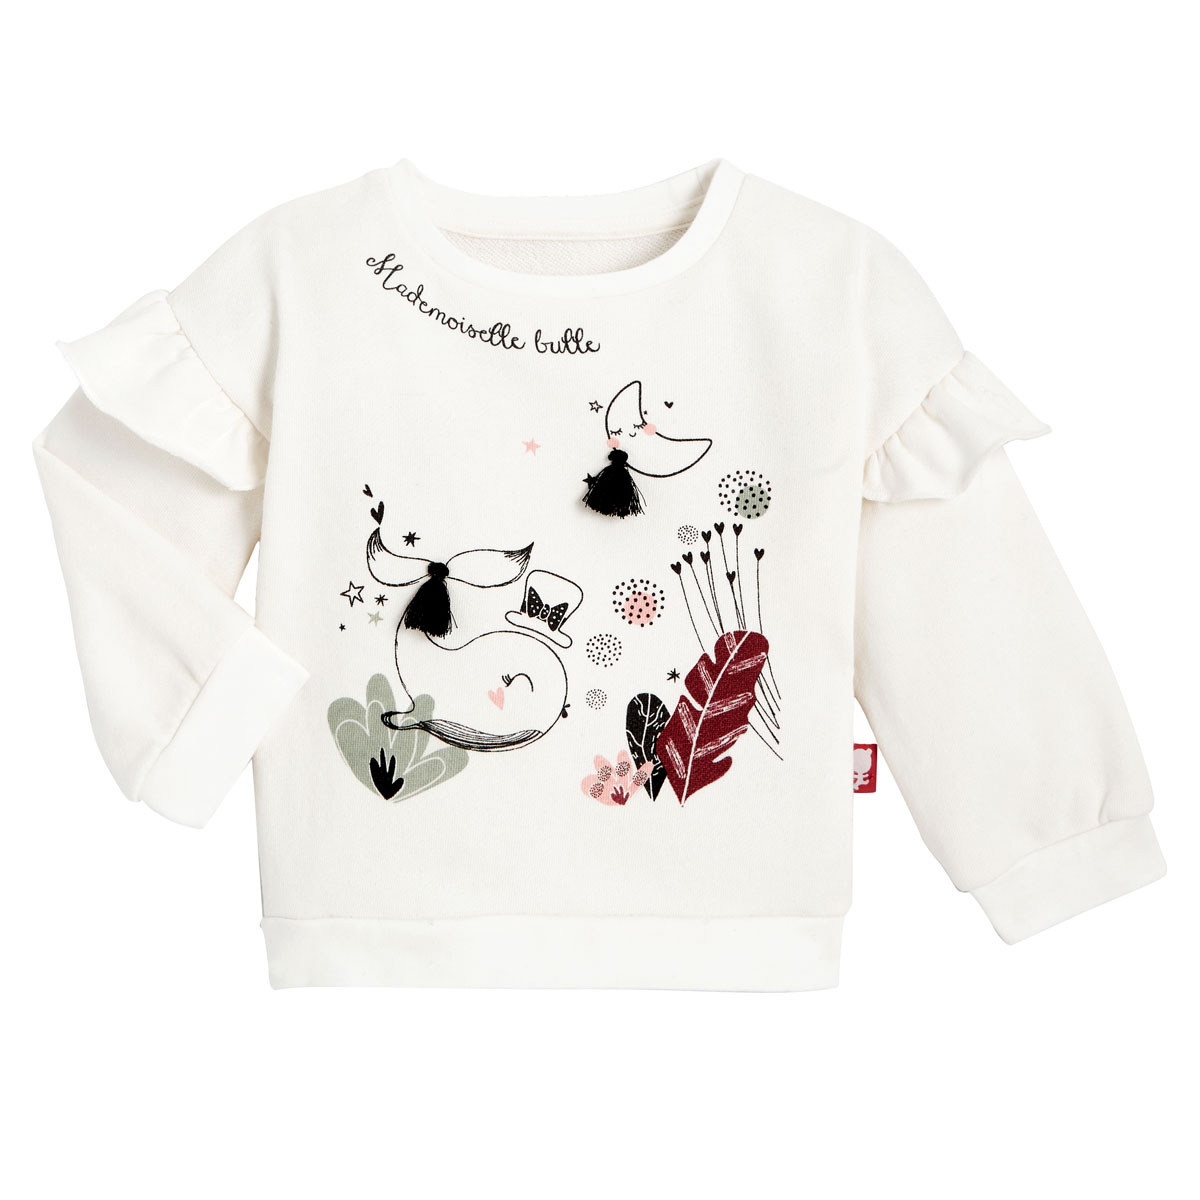 Sweat-shirt fille en coton gratté et legging Bulle haut